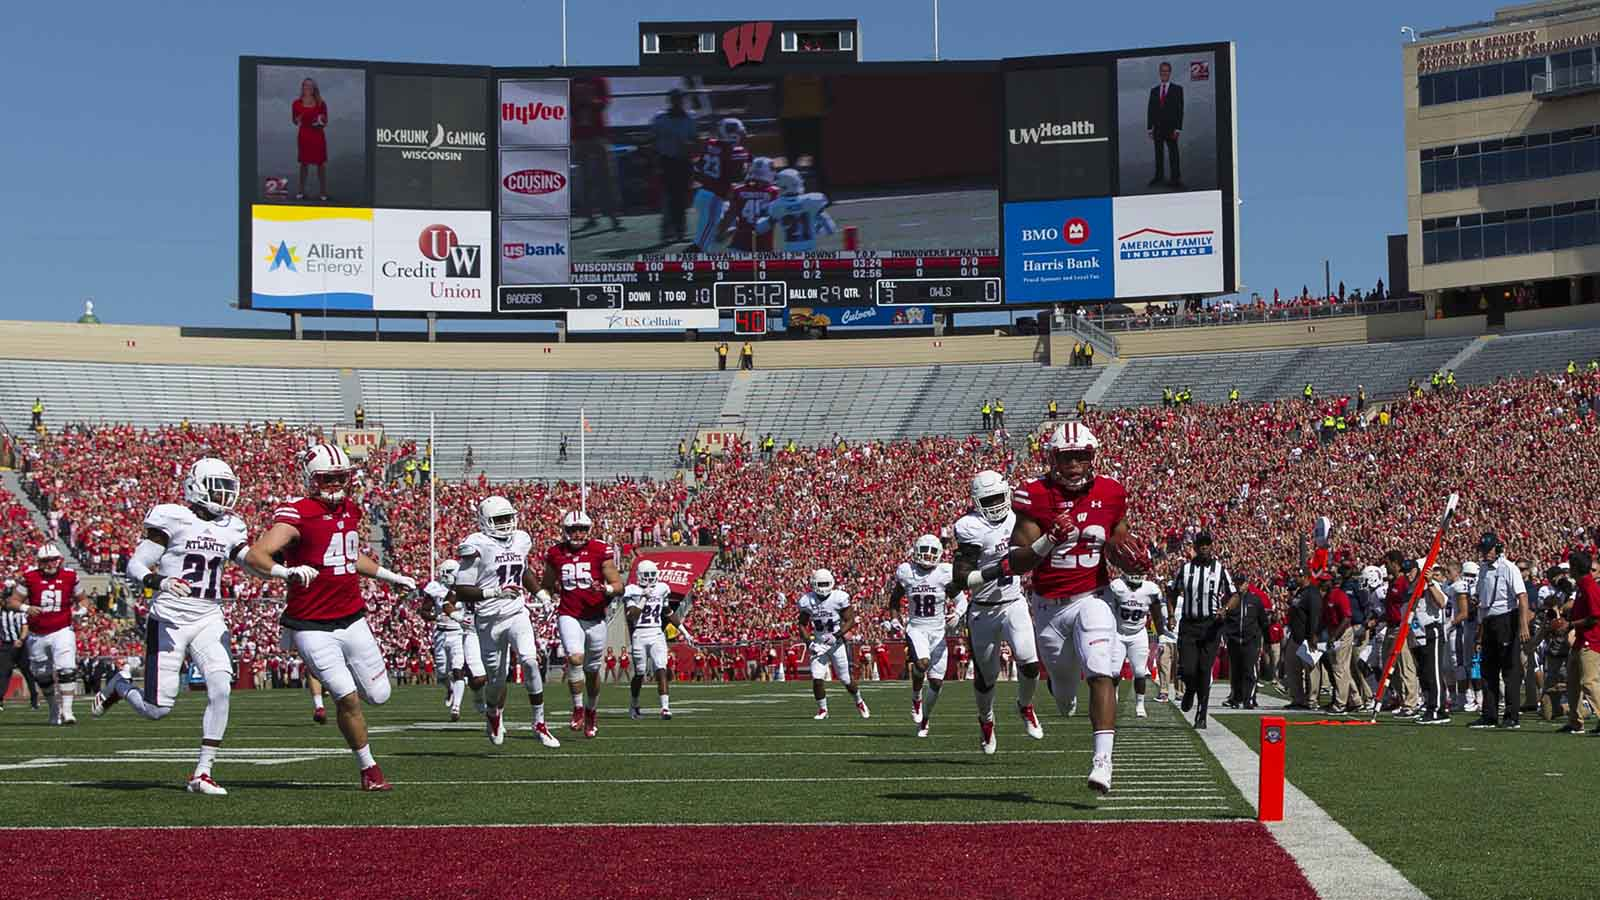 Sep 9, 2017; Madison, WI, USA; Wisconsin Badgers running back Jonathan Taylor (23) scores a touchdown during the first quarter against the Florida Atlantic Owls at Camp Randall Stadium. Mandatory Credit: Jeff Hanisch-USA TODAY Sports